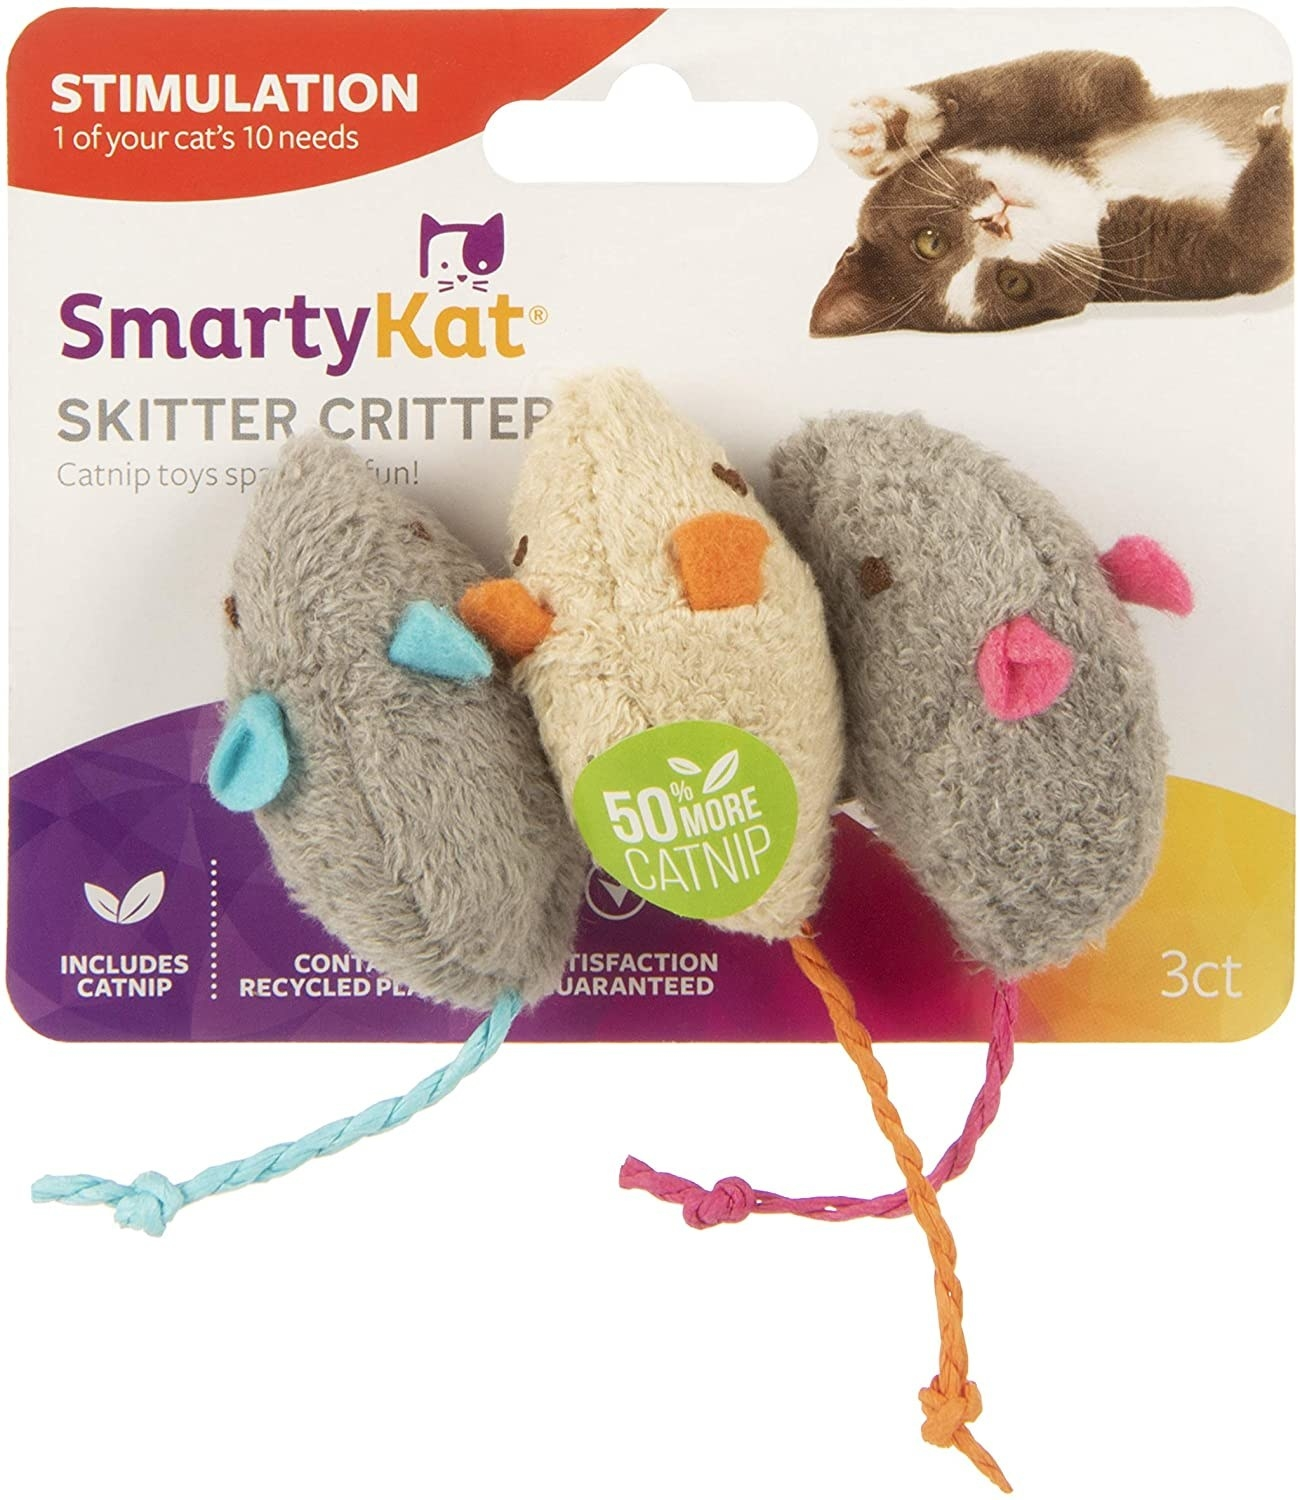 Three stuffed mice catnip toys on colorful packaging